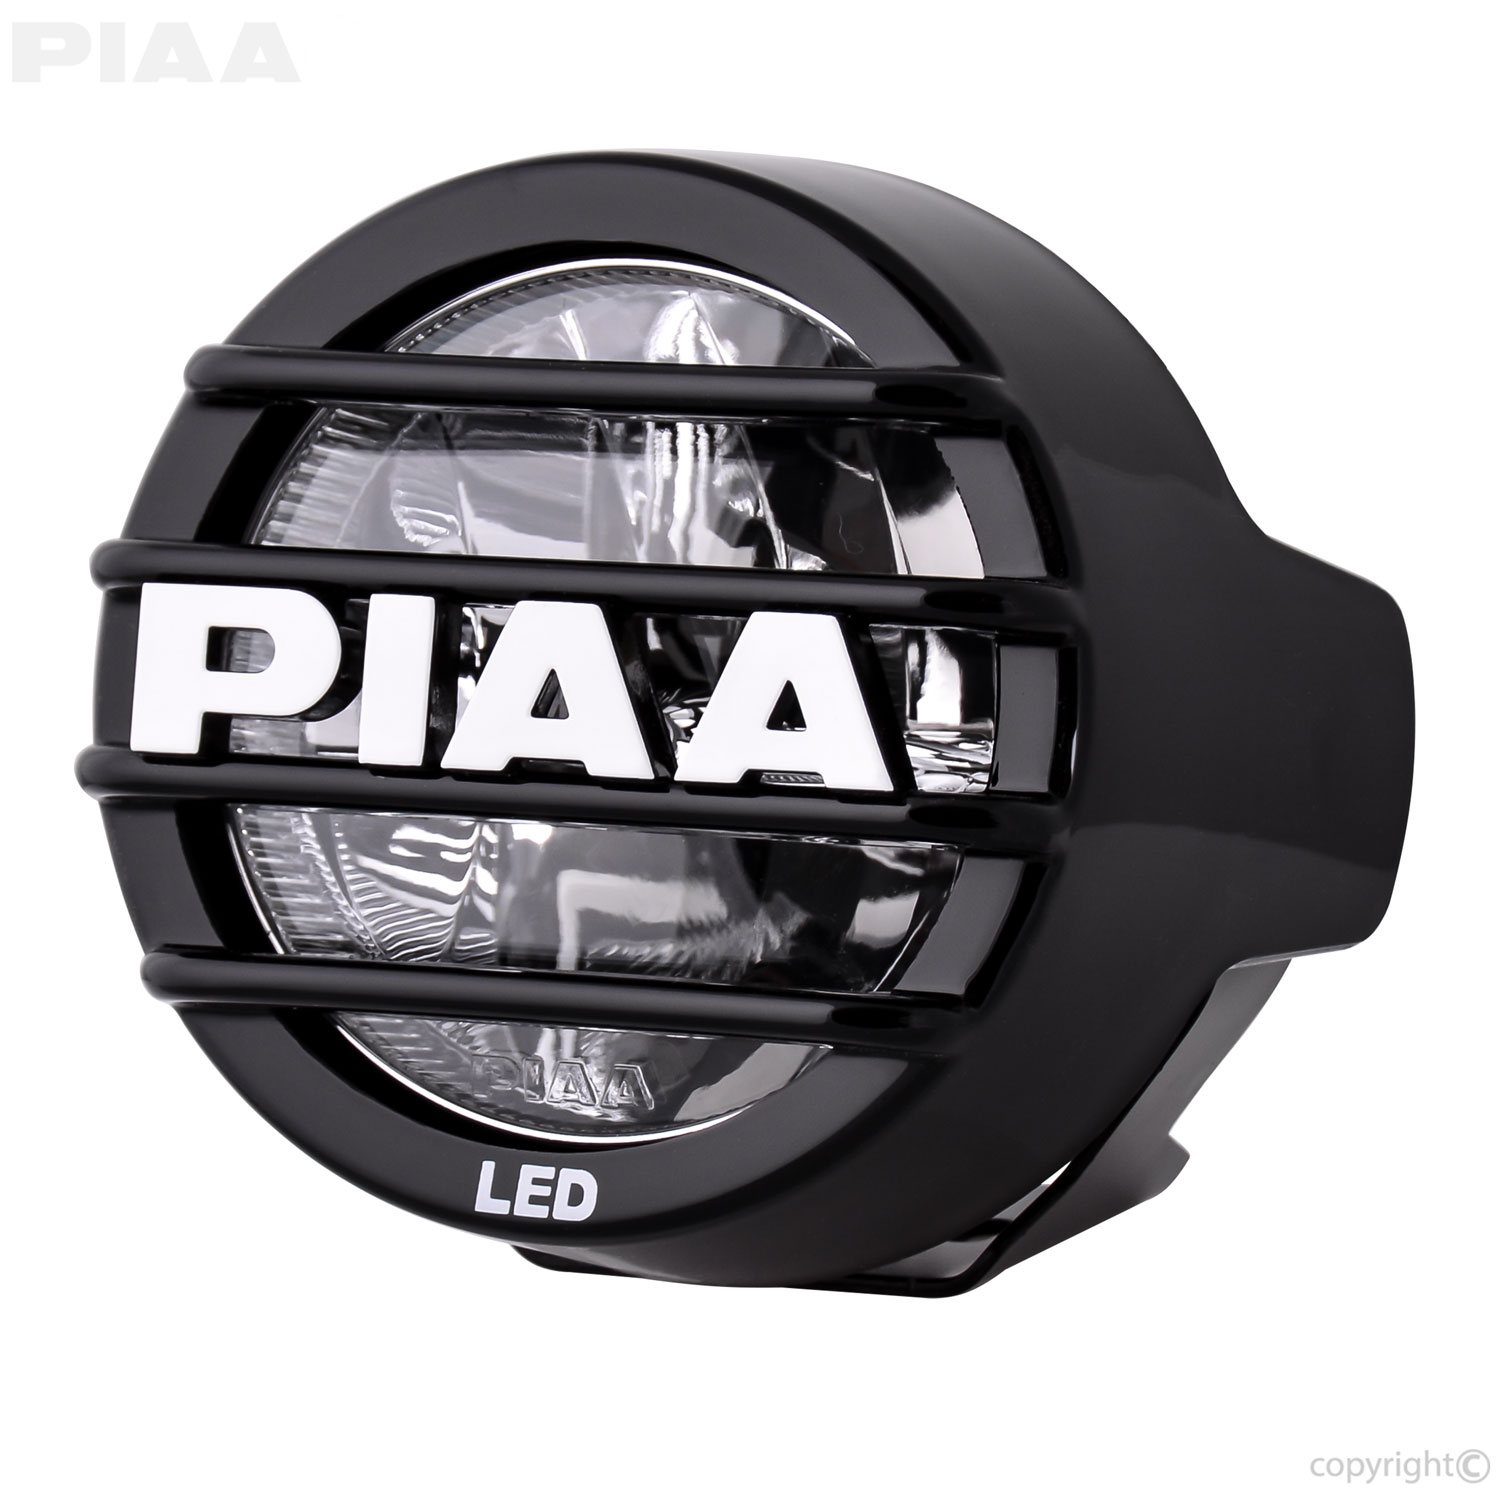 PIAA LP530 LED Driving light